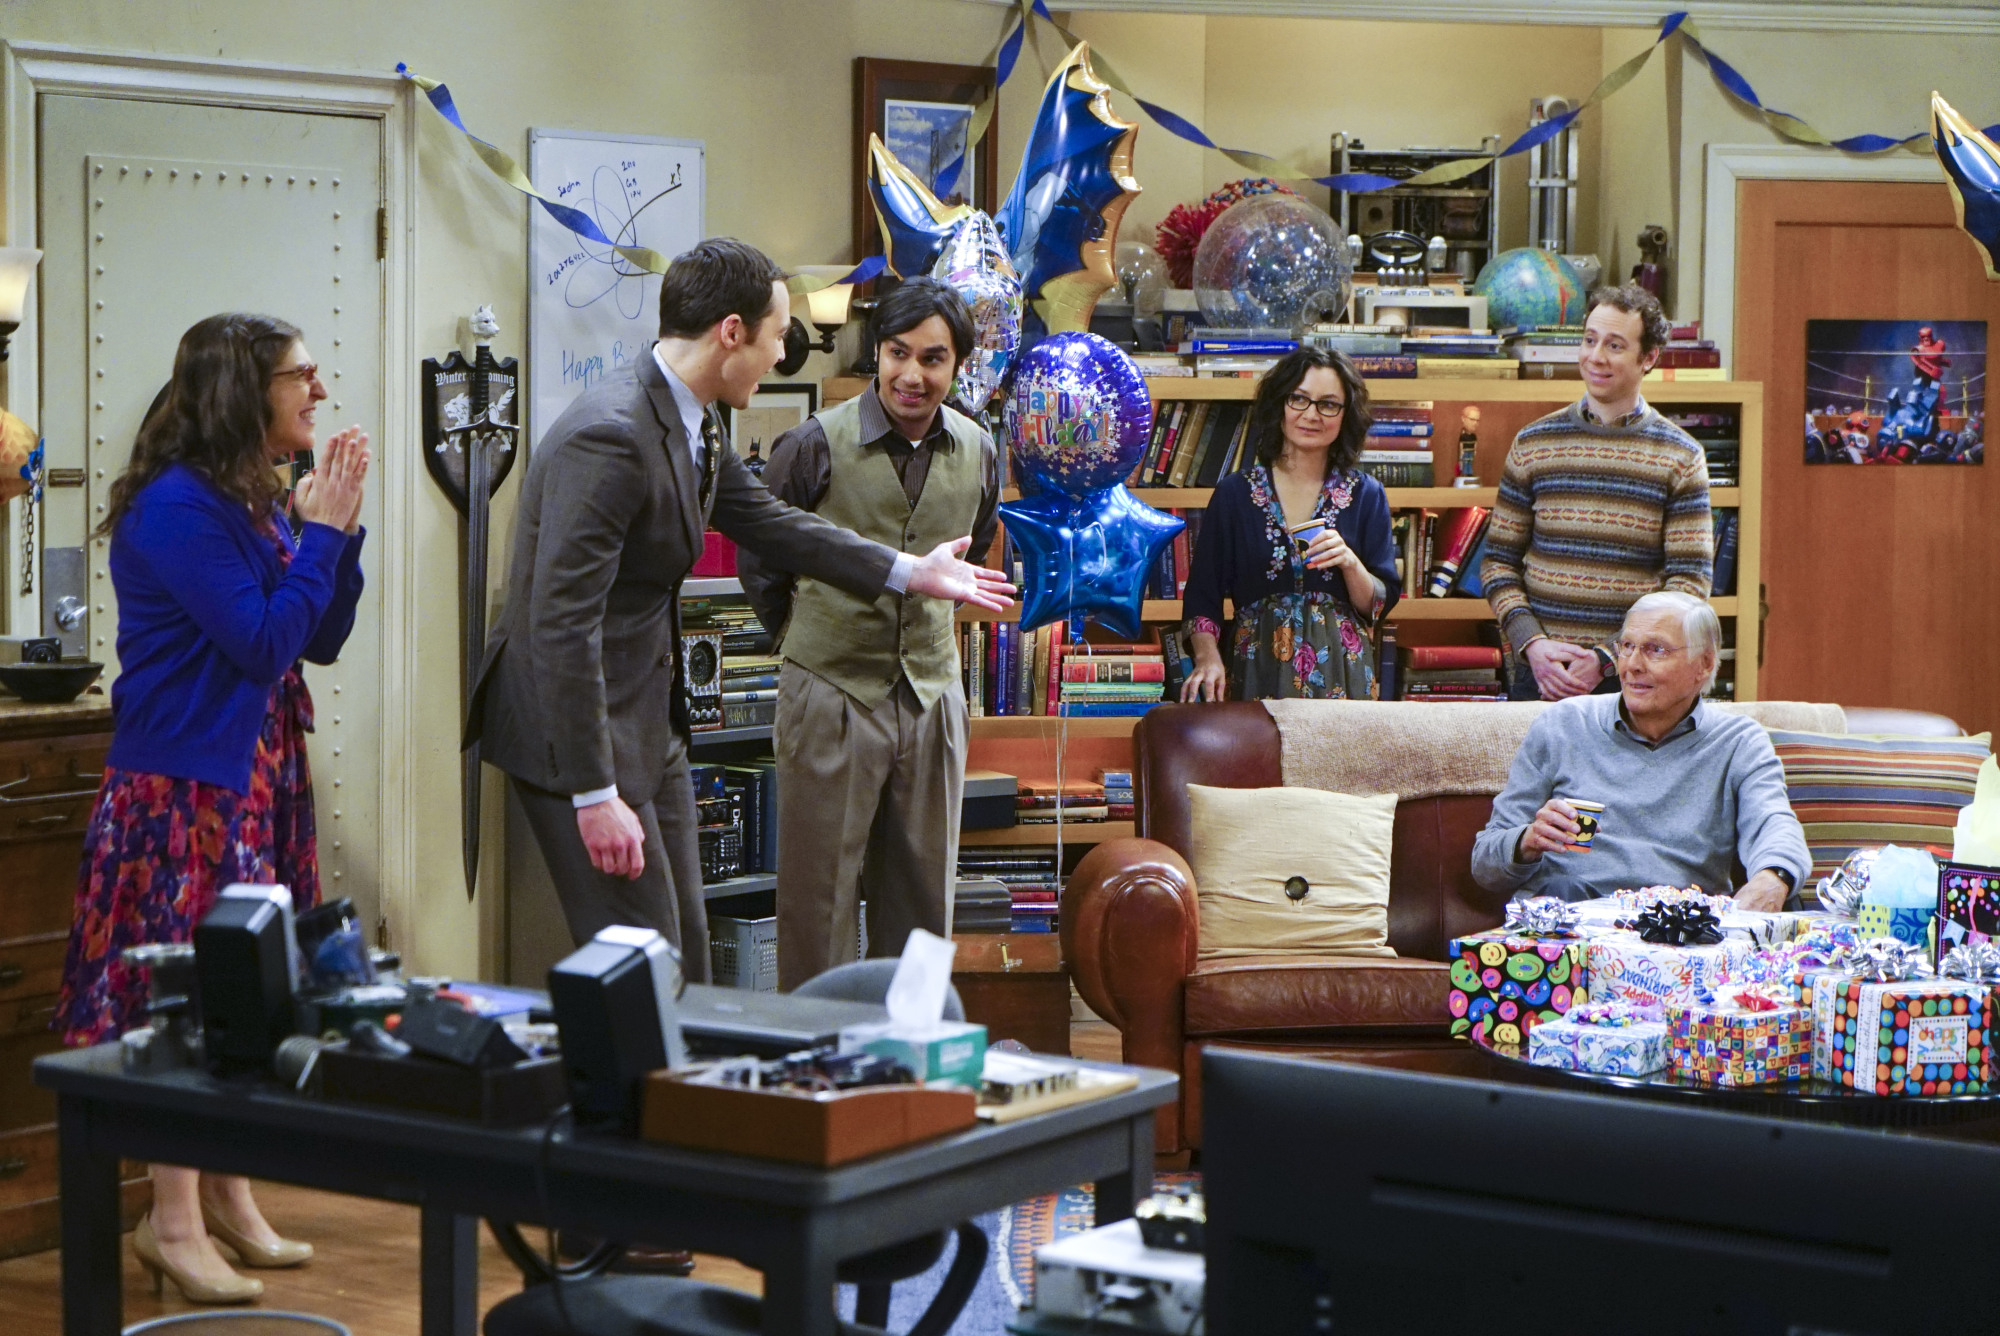 Big bang theory season 9 episode 6 summary : Sony rx100 m4 release date